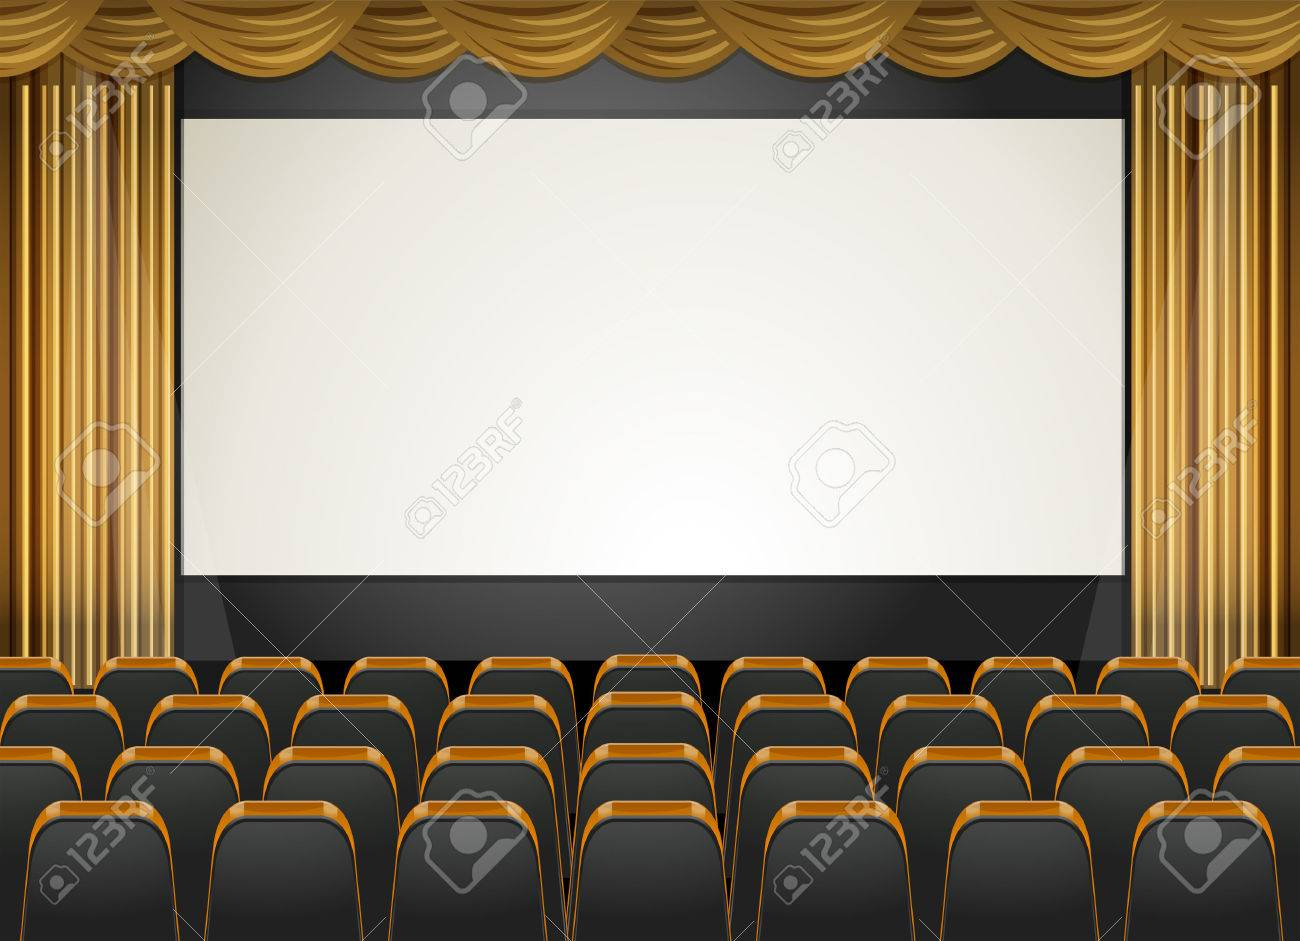 Theatre scene with screen and seats illustration.